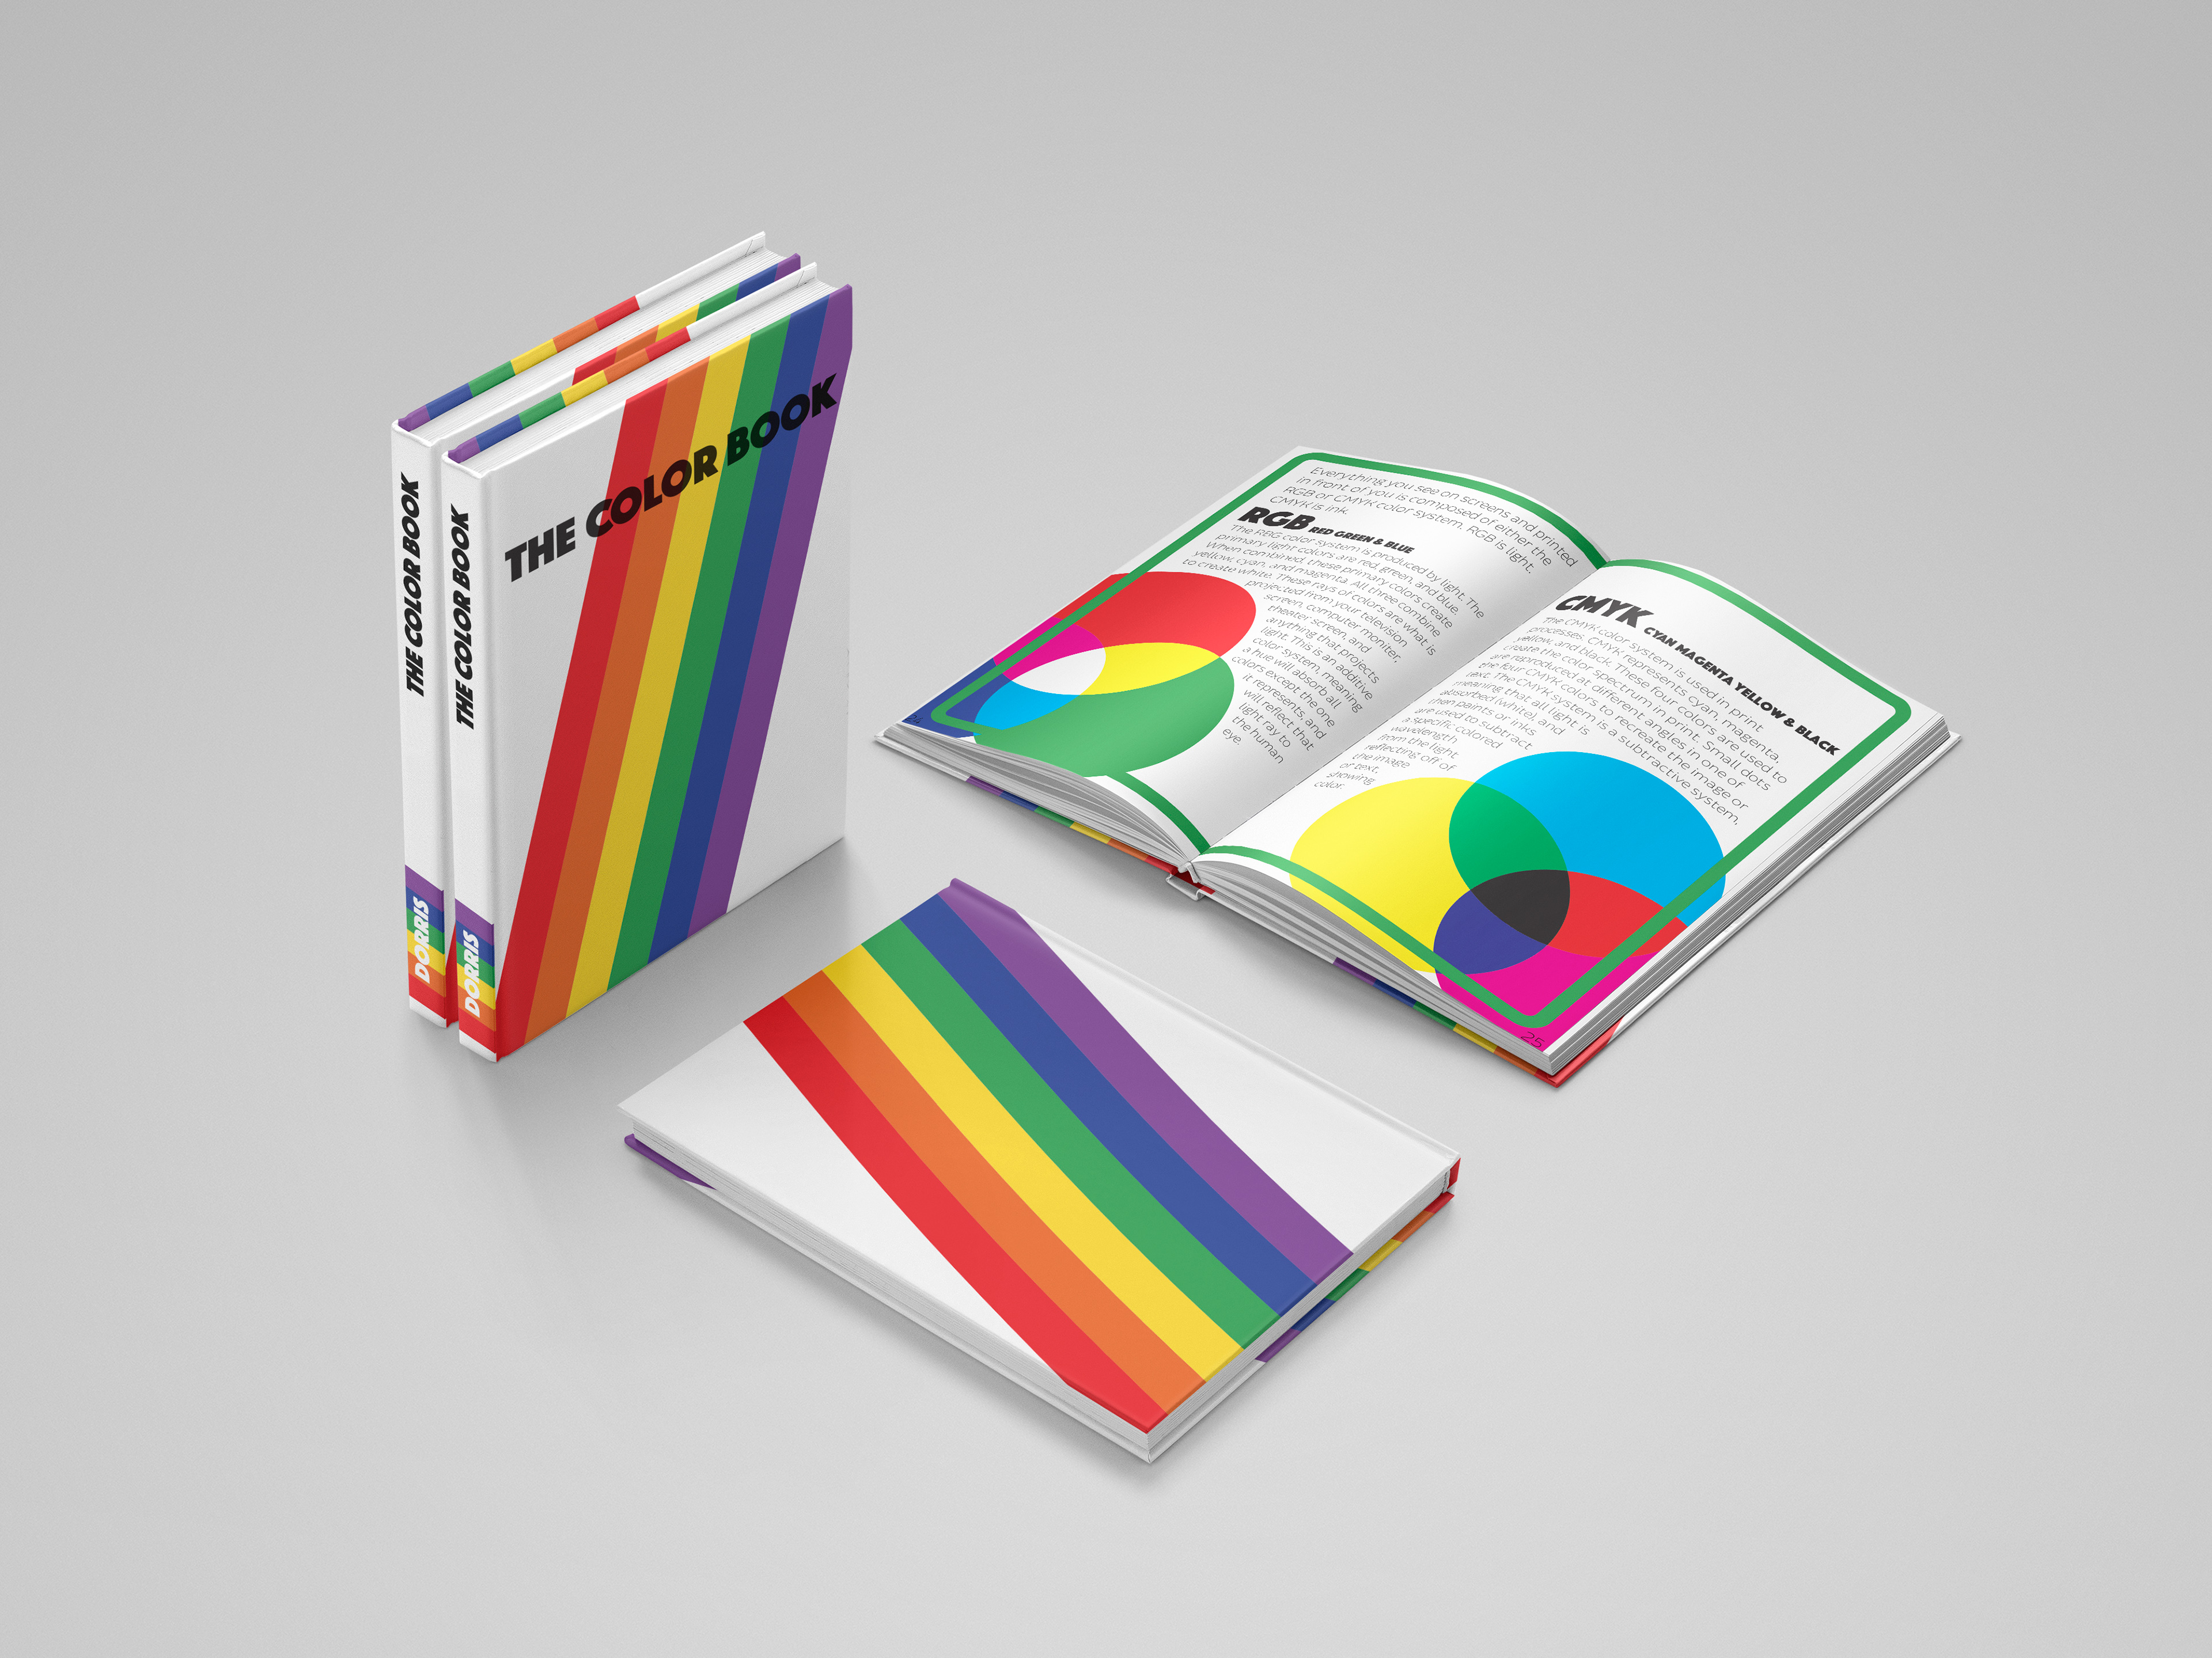 Book for color theory - Book About Color Theory Color Theory Book